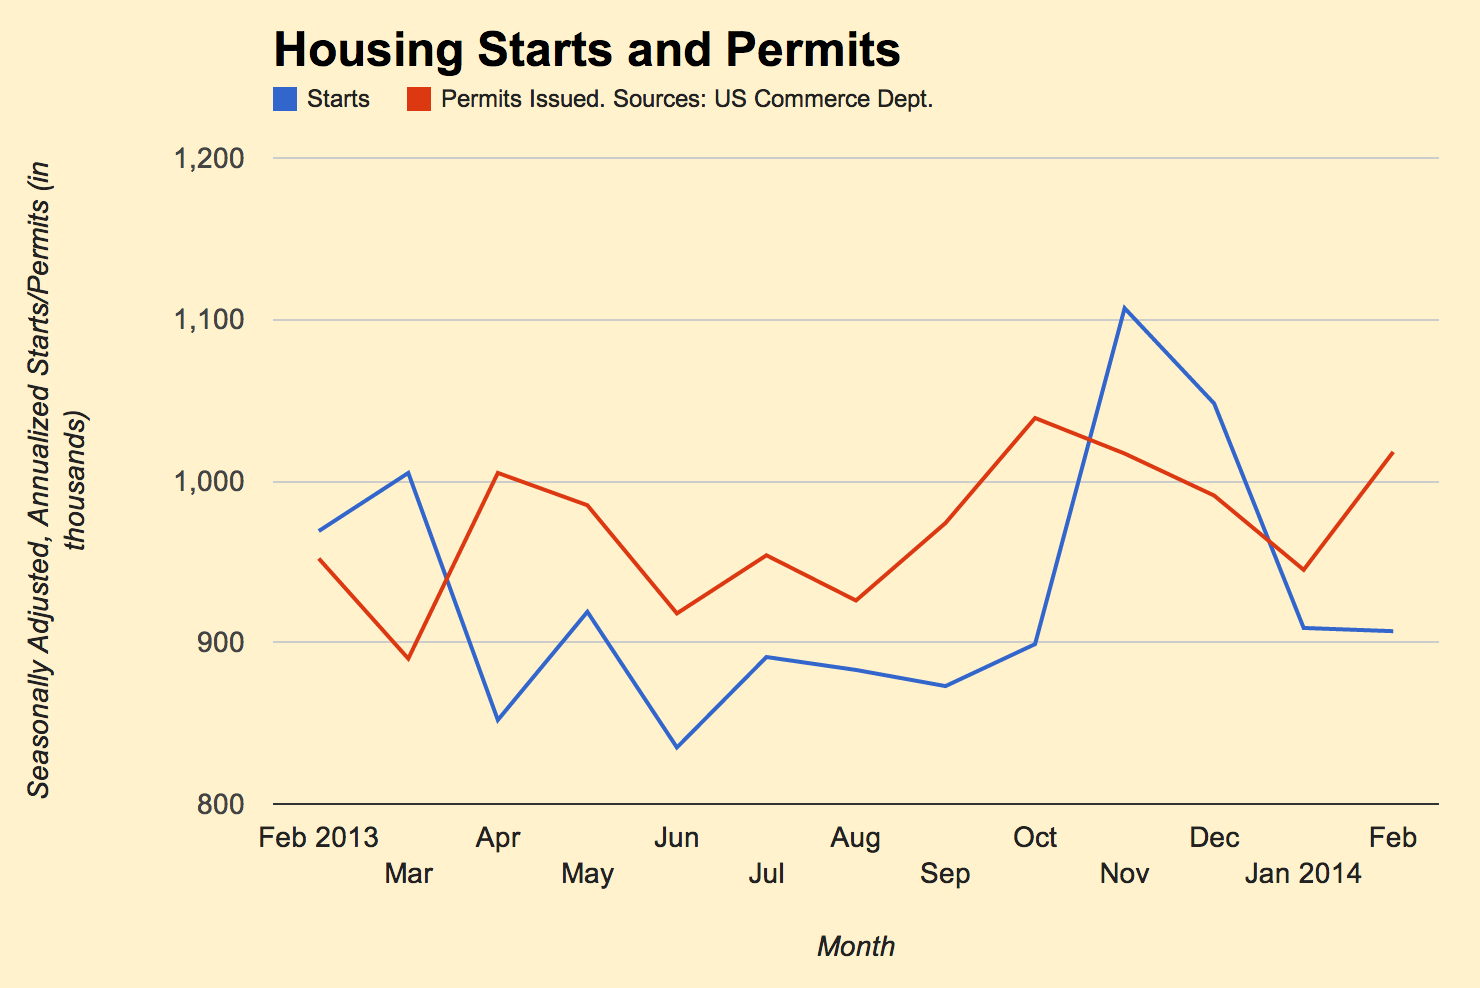 Februarys weather kept U.S. housing starts low, at a seasonally adjusted, annualized rate of 907,000, down 2,000 from January. Heavy permit applications, however, suggested the numbers would increase again once the weather warmed.